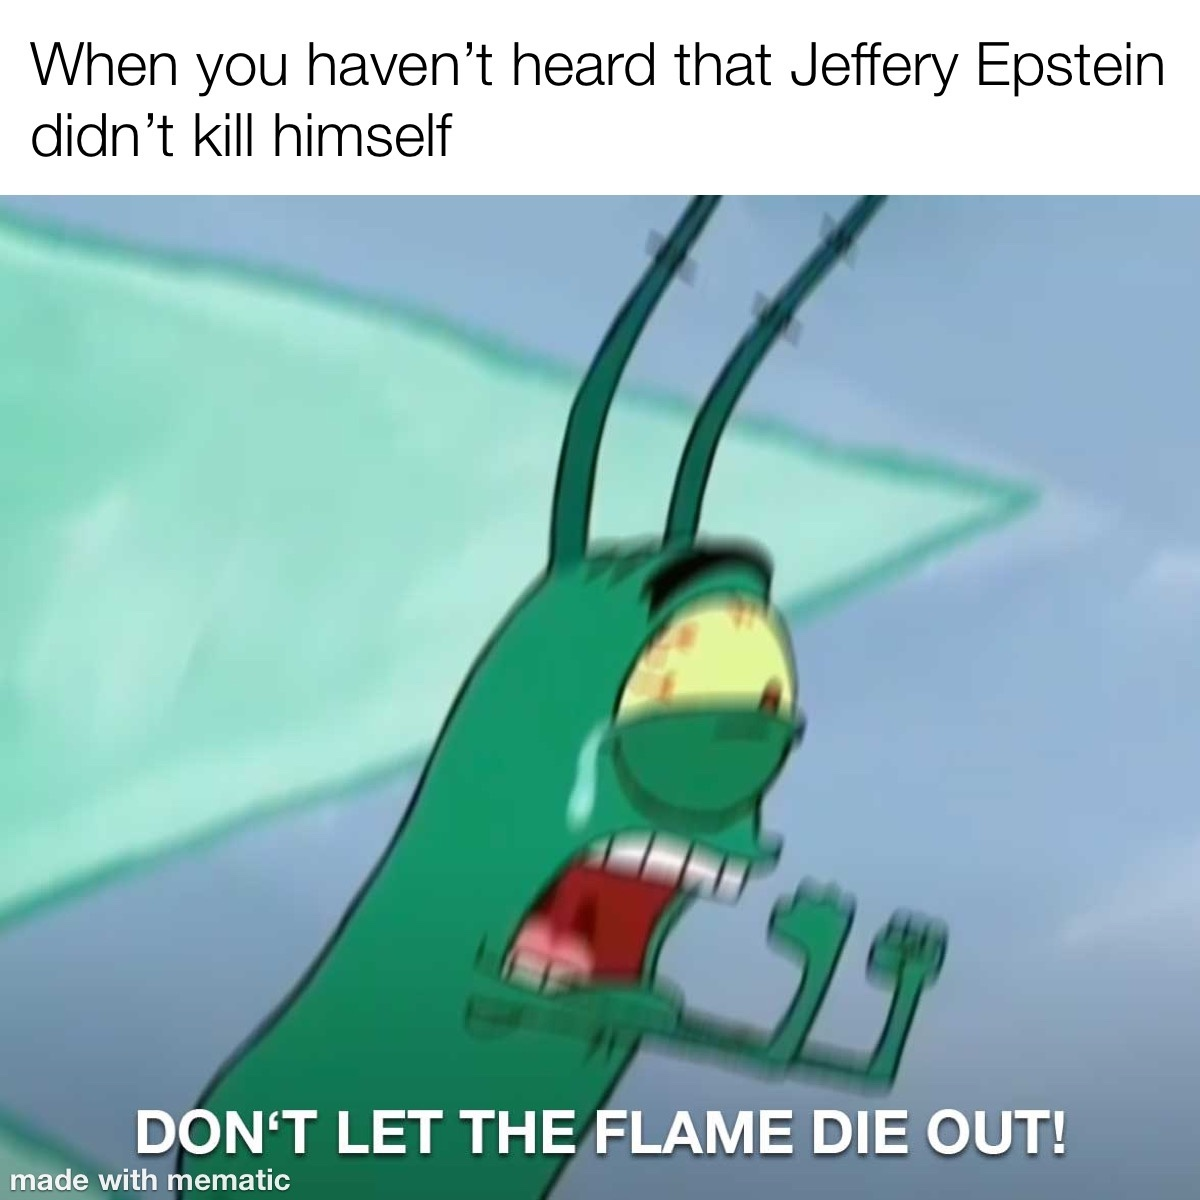 don't let the flame die - meme